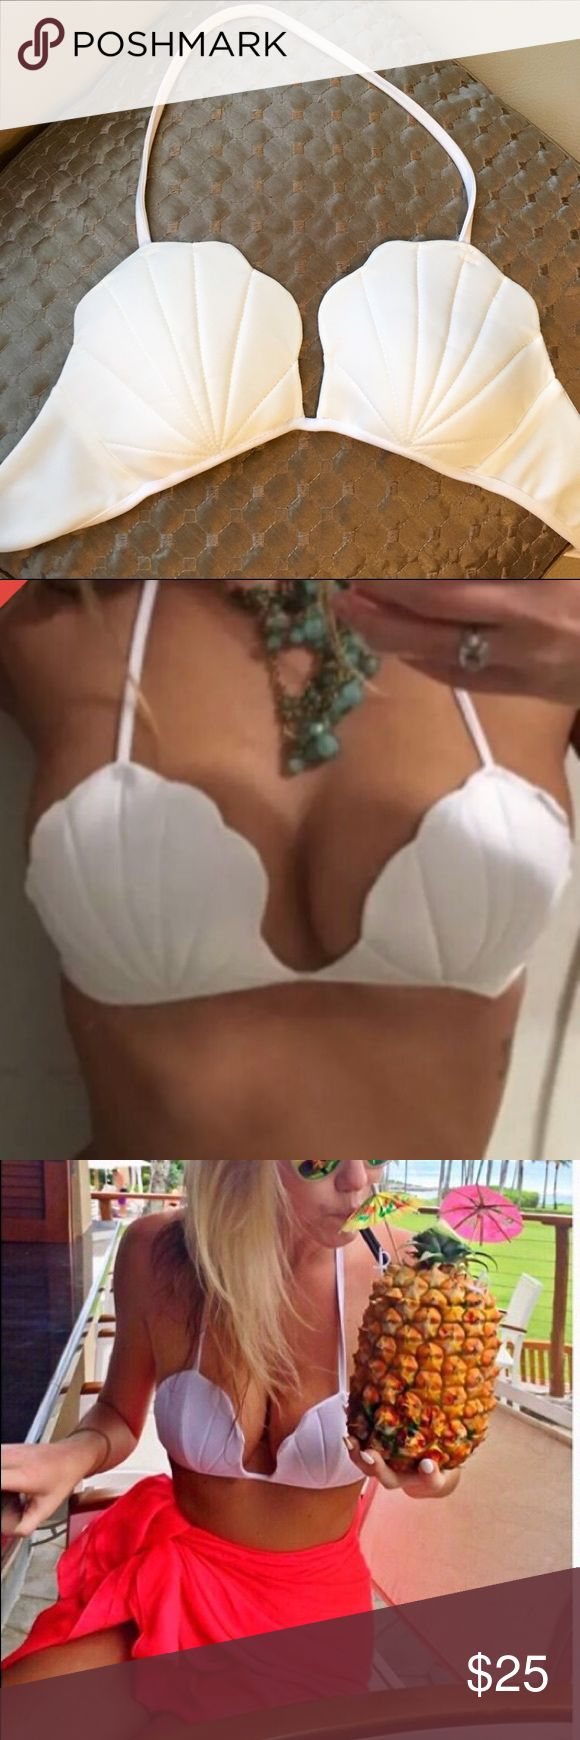 Mermaid Bikini Shell Top So cute!! White Seashell bikini top perfect for a beachy mermaid look! Does not have an underwire, ties in the back and halter around the neck, would recommend for smaller bust sizes. Very similar to the Wildfox and Acacia tops at a fraction of the price!!  Swim Bikinis